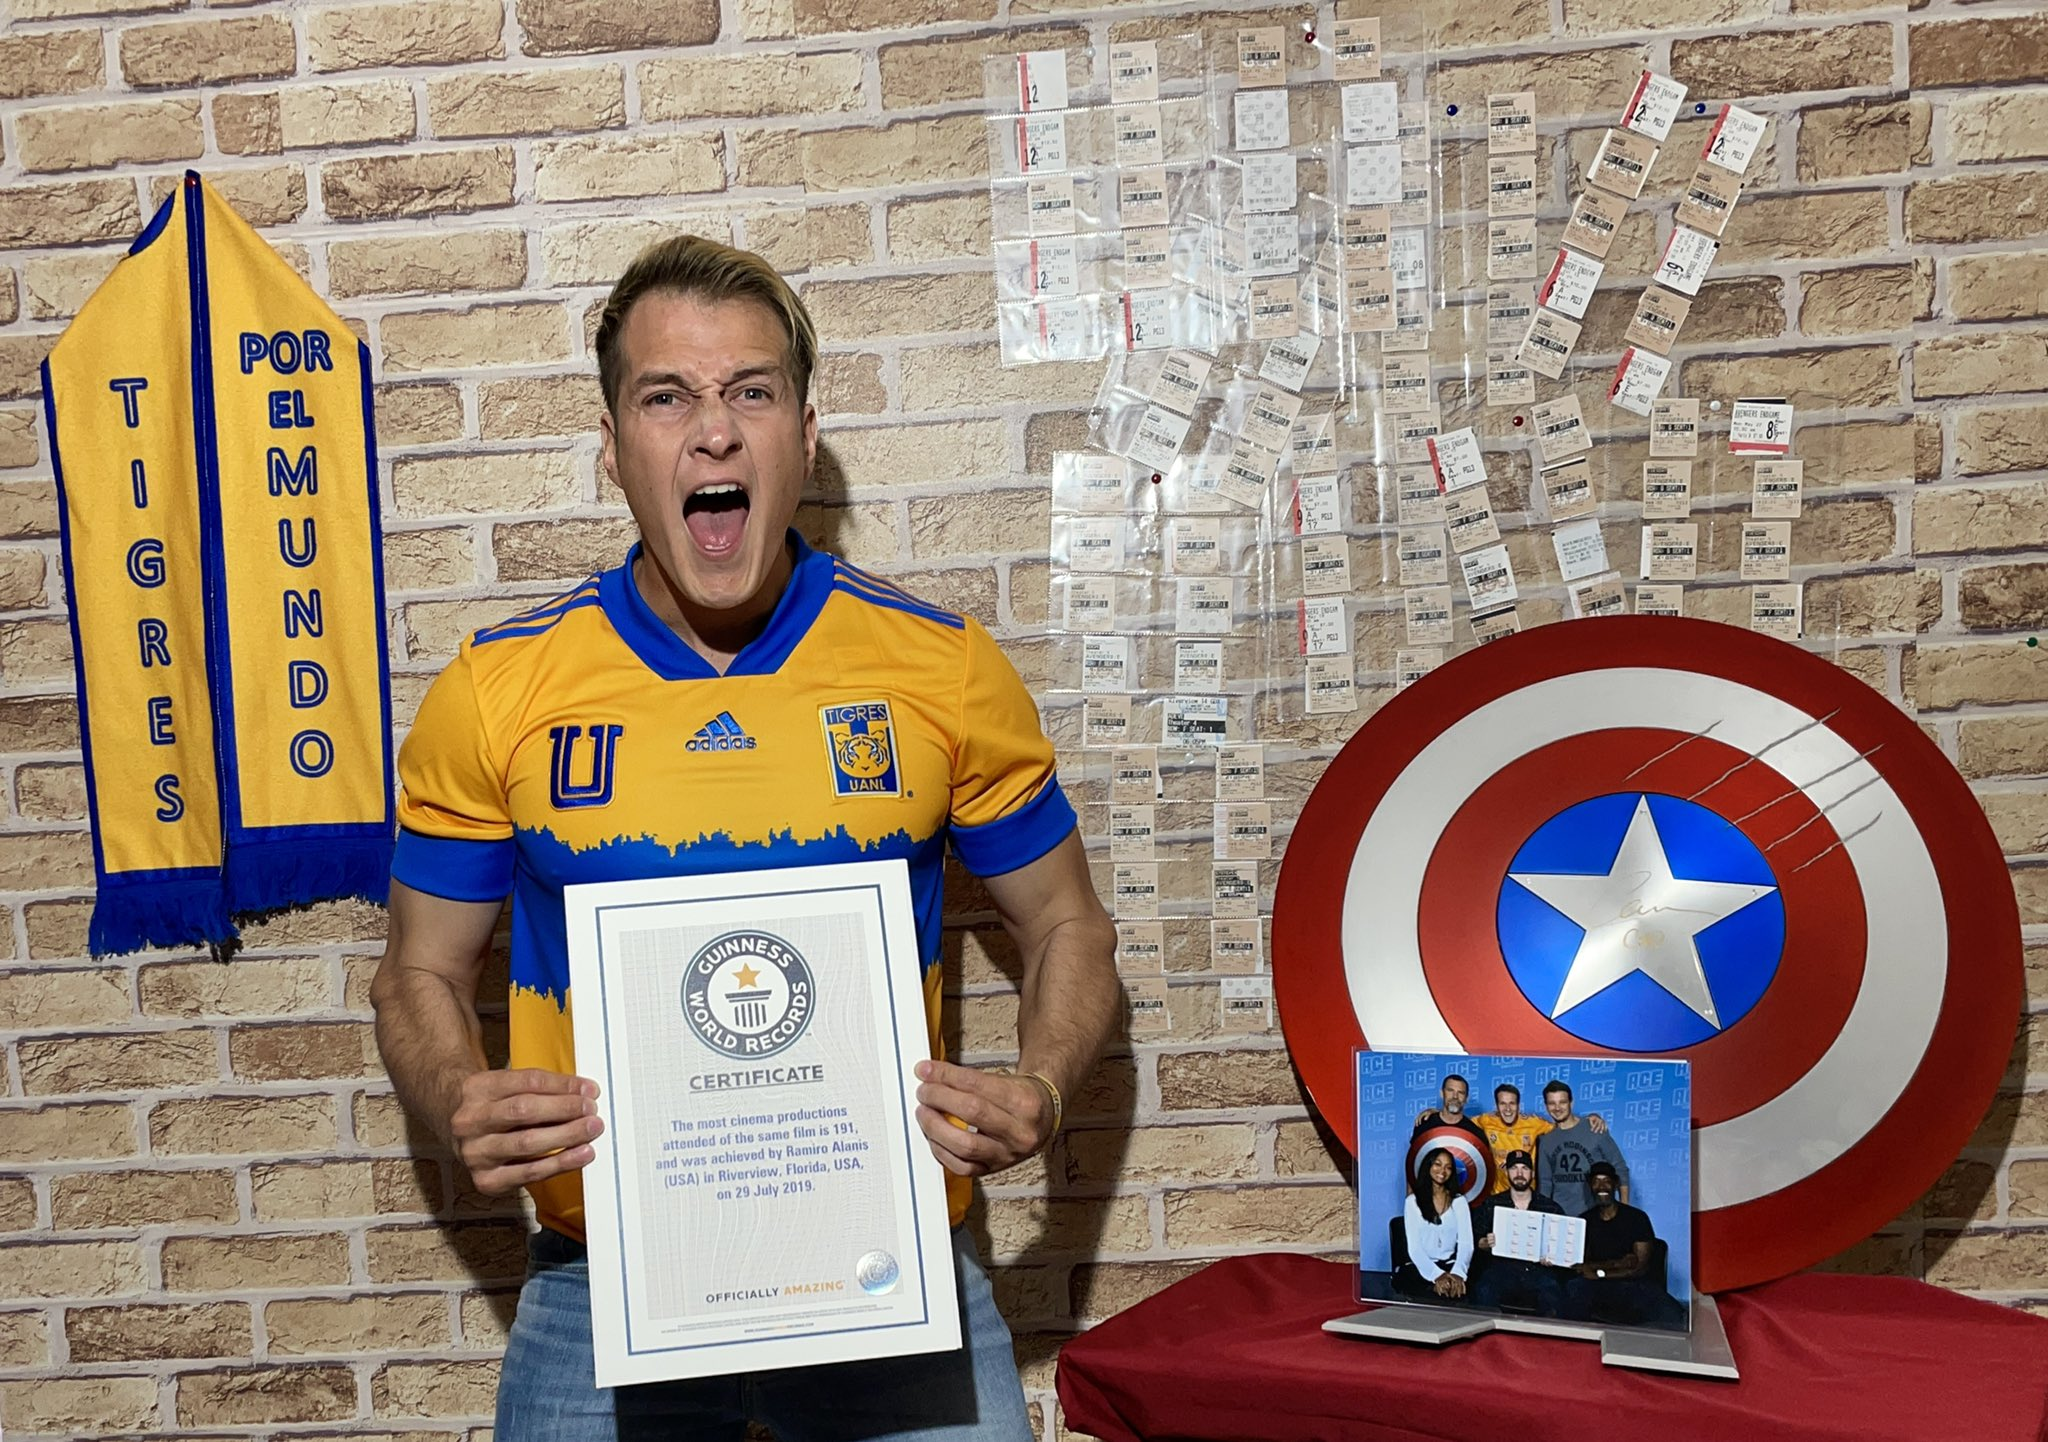 """Ramiro Alanis has seen """"The Avengers"""" in movies 191 times gets into the Guinness Book of Records"""